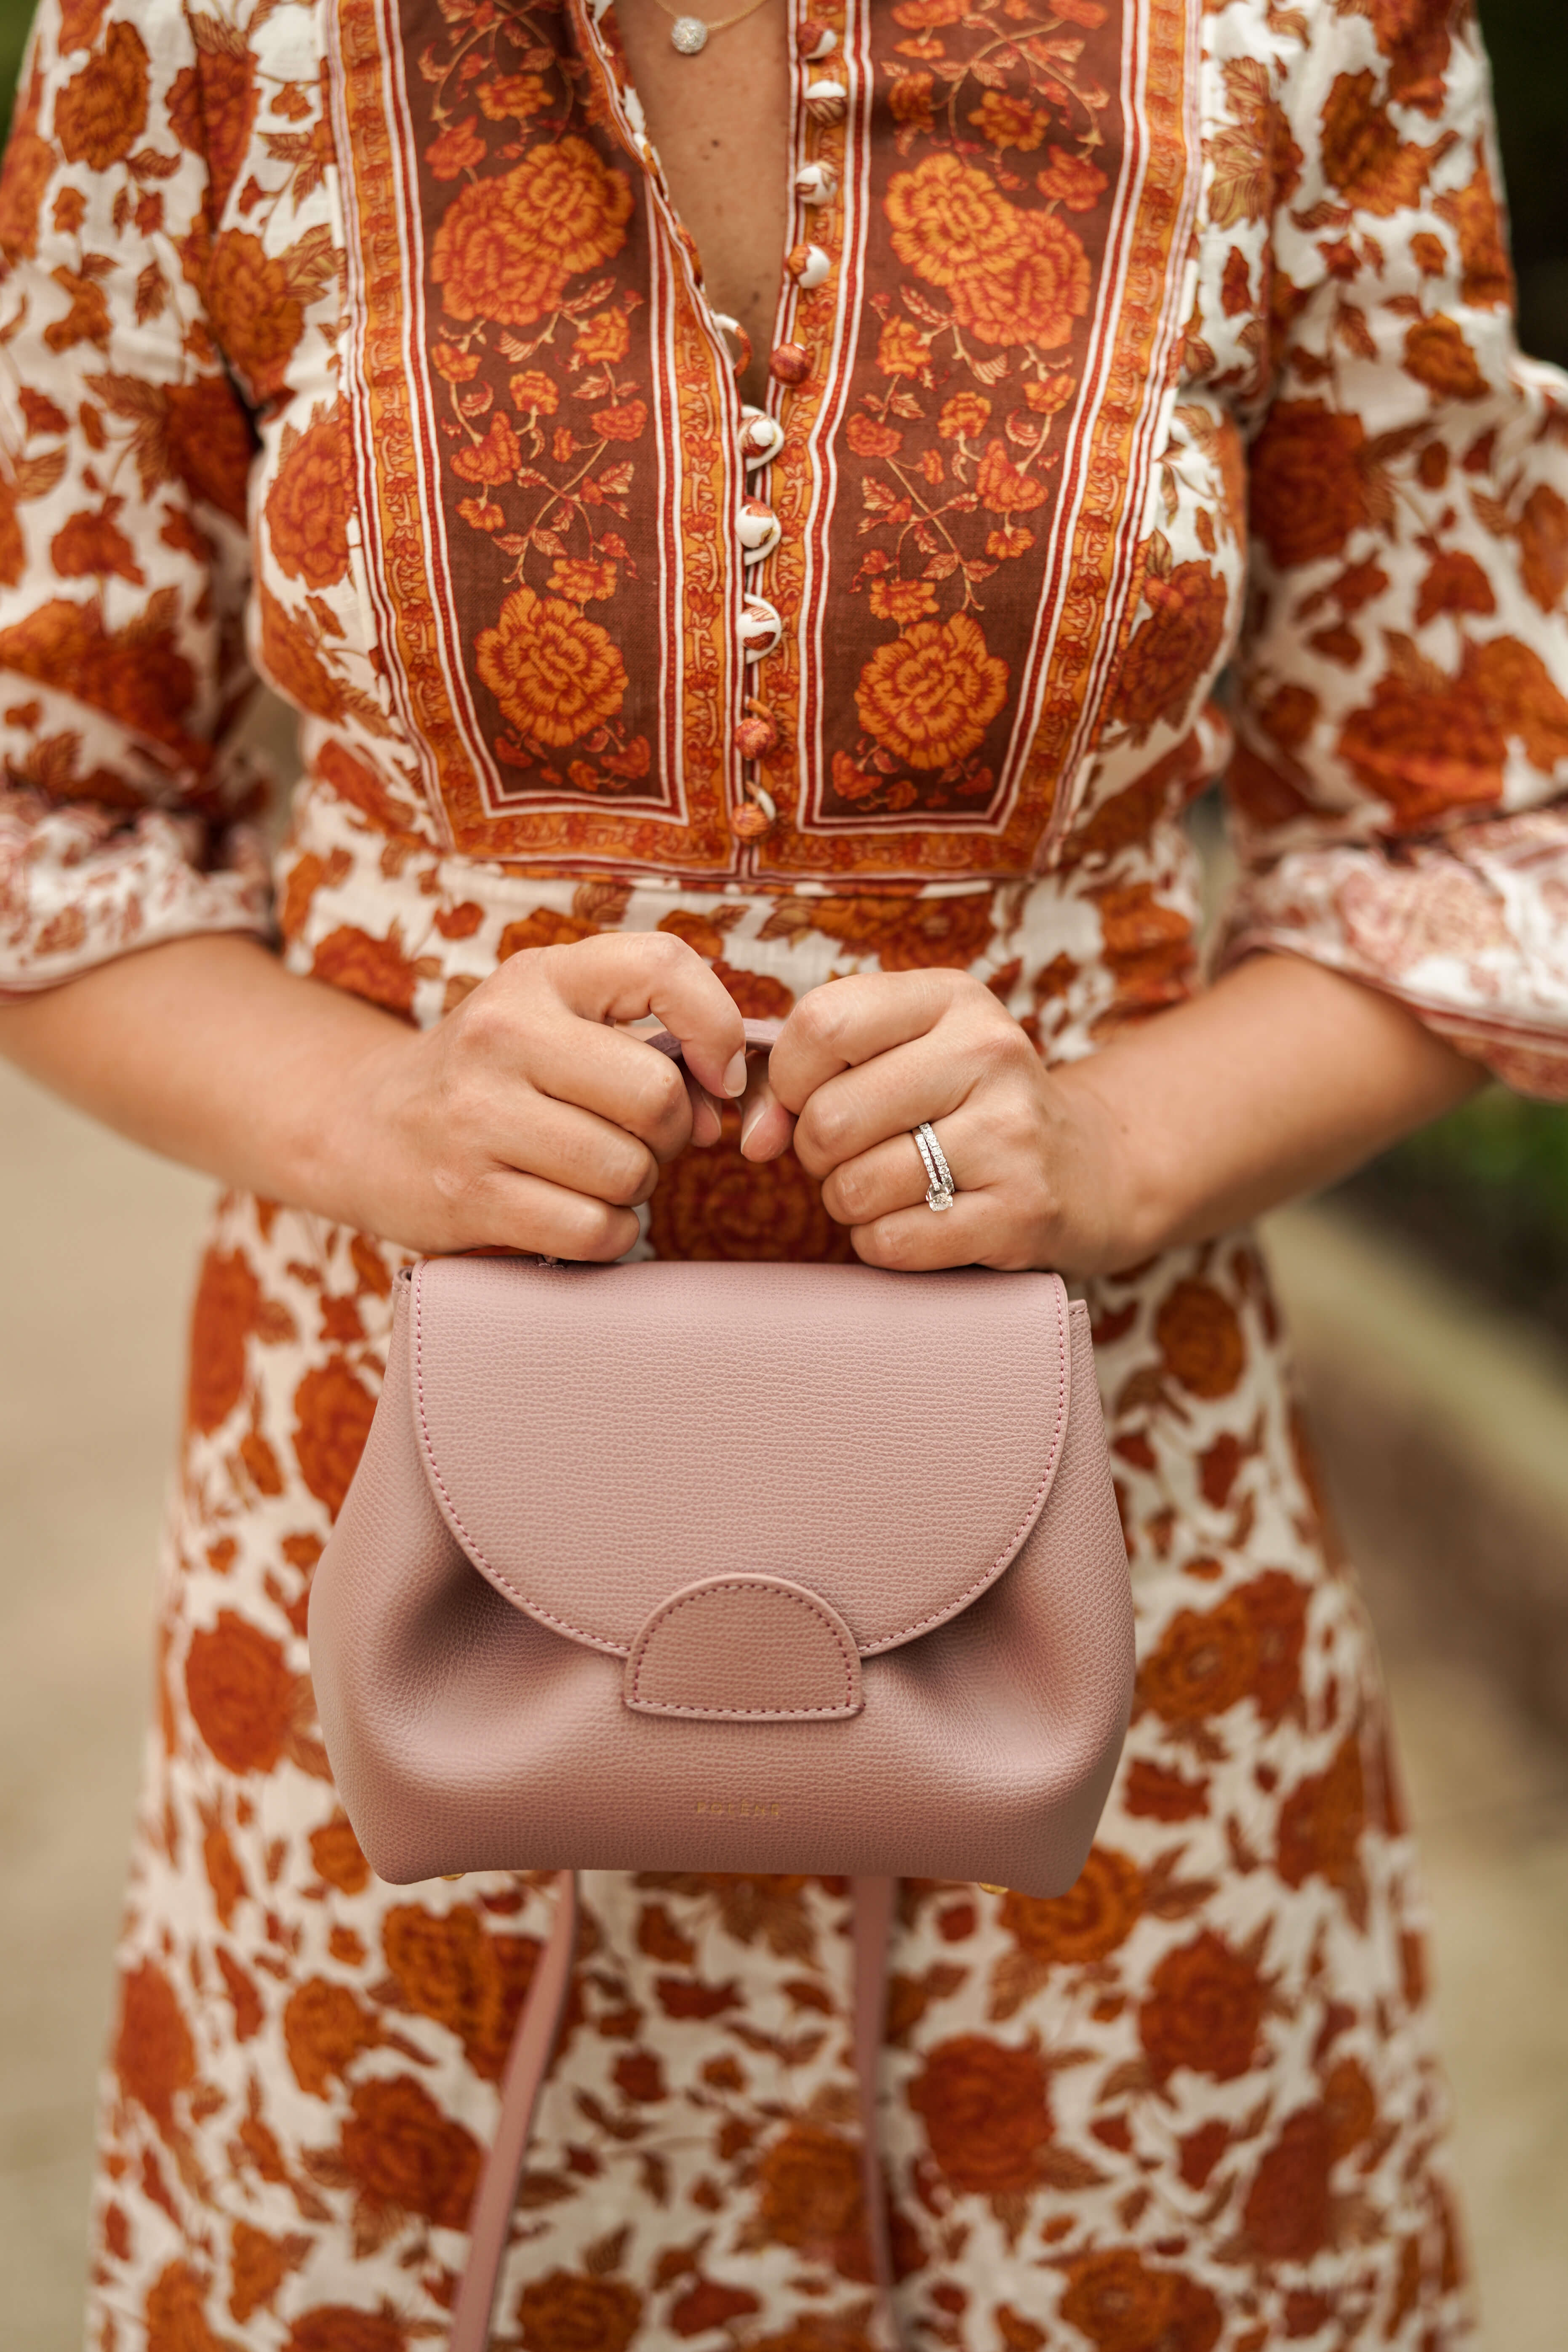 Zimmermann Dress Coclico Booties Polene Bag Outfit by Modnitsa Styling